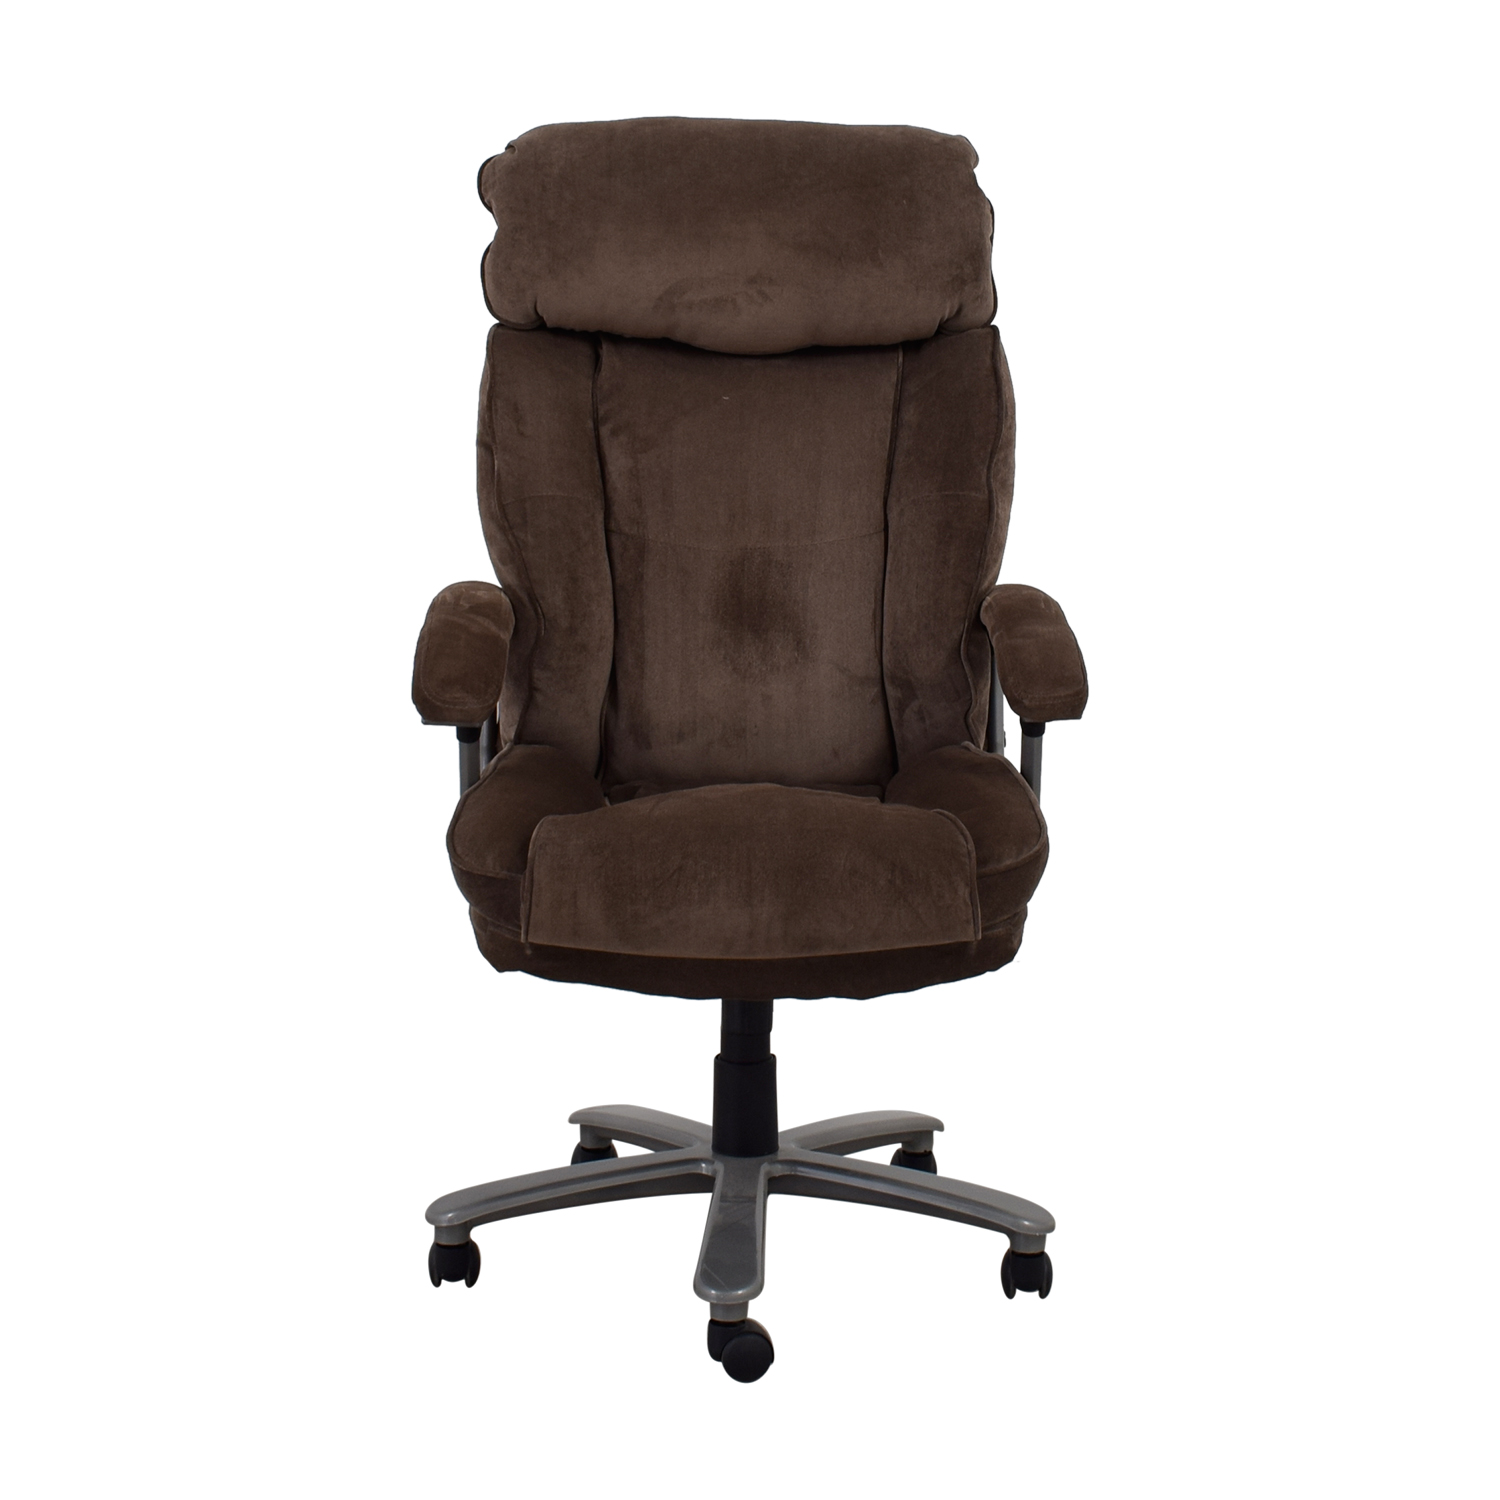 Comfy Office Chair Home Office Chairs Used Home Office Chairs For Sale